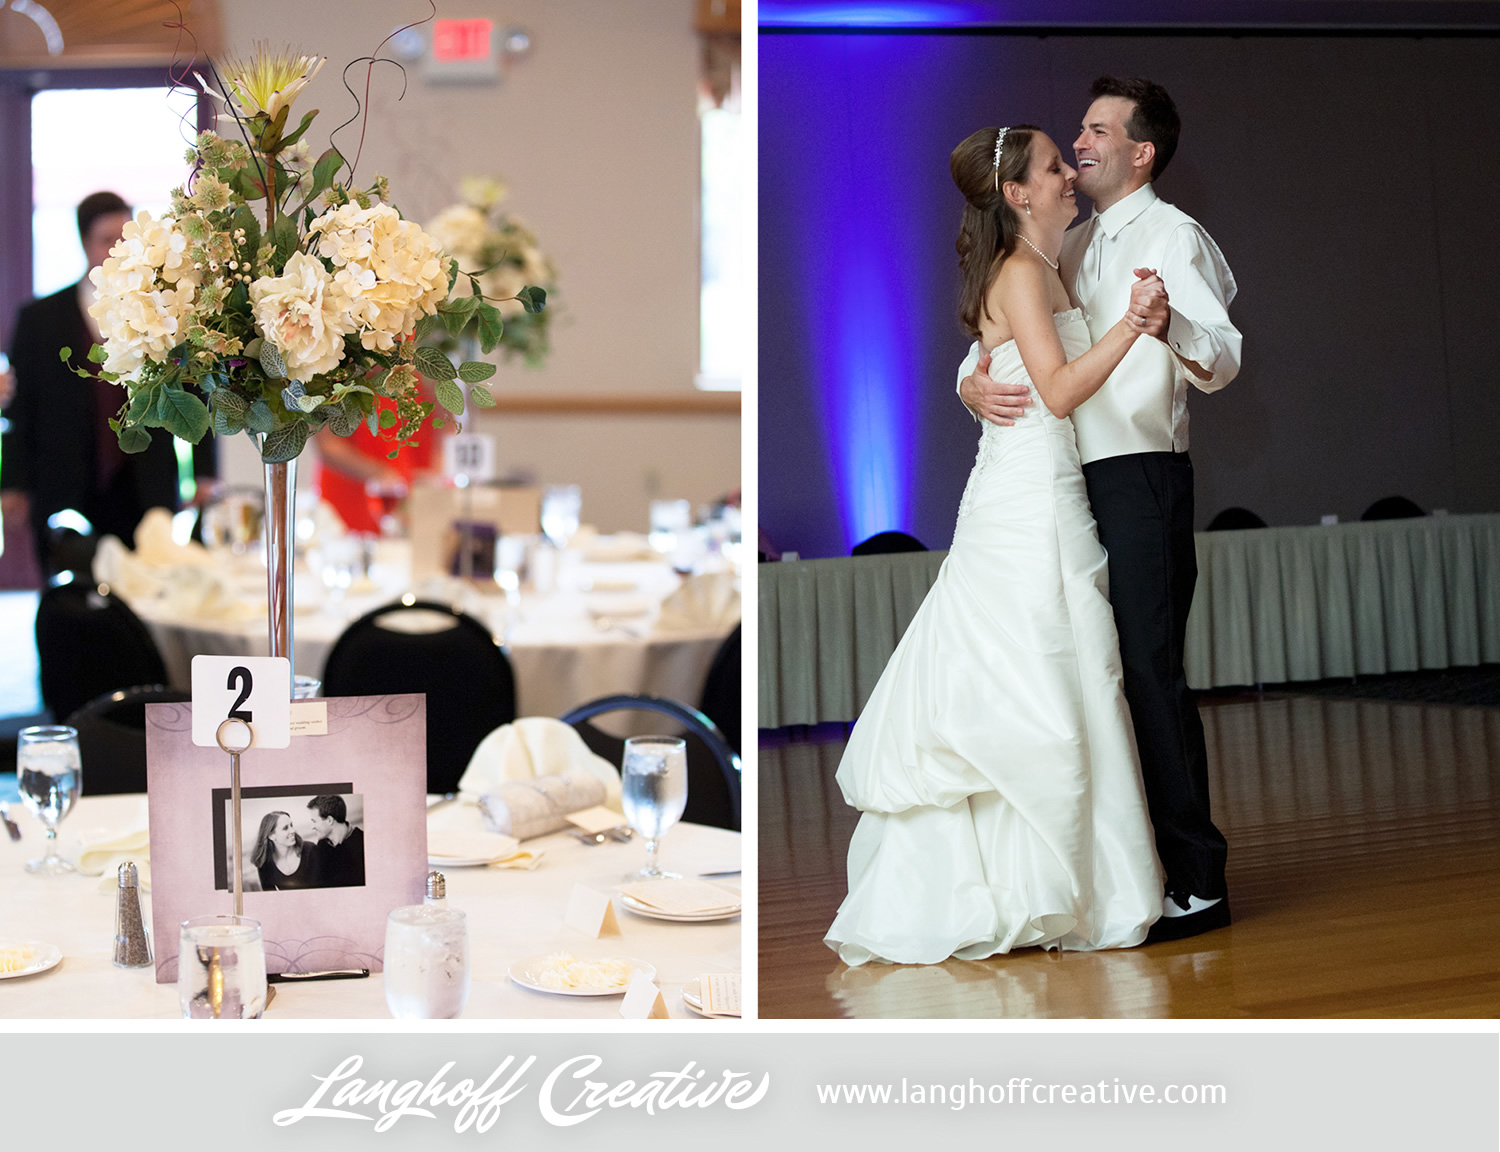 PlainfieldWedding-2013-LanghoffCreative-MattErin-23-photo.jpg